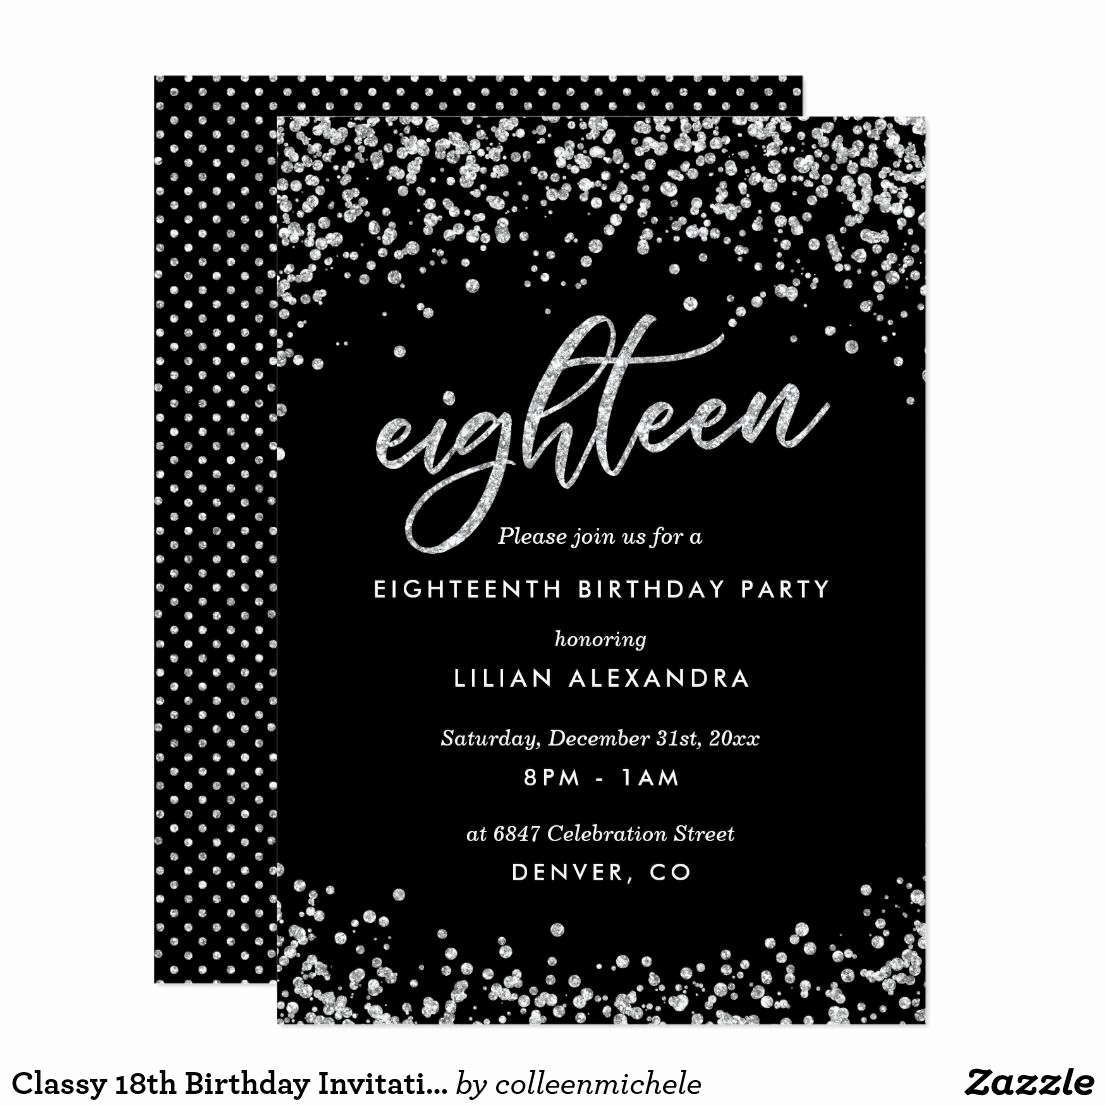 18th Birthday Invitation Ideas Inspirational Classy 18th Birthday Invitation Sparkly Confetti